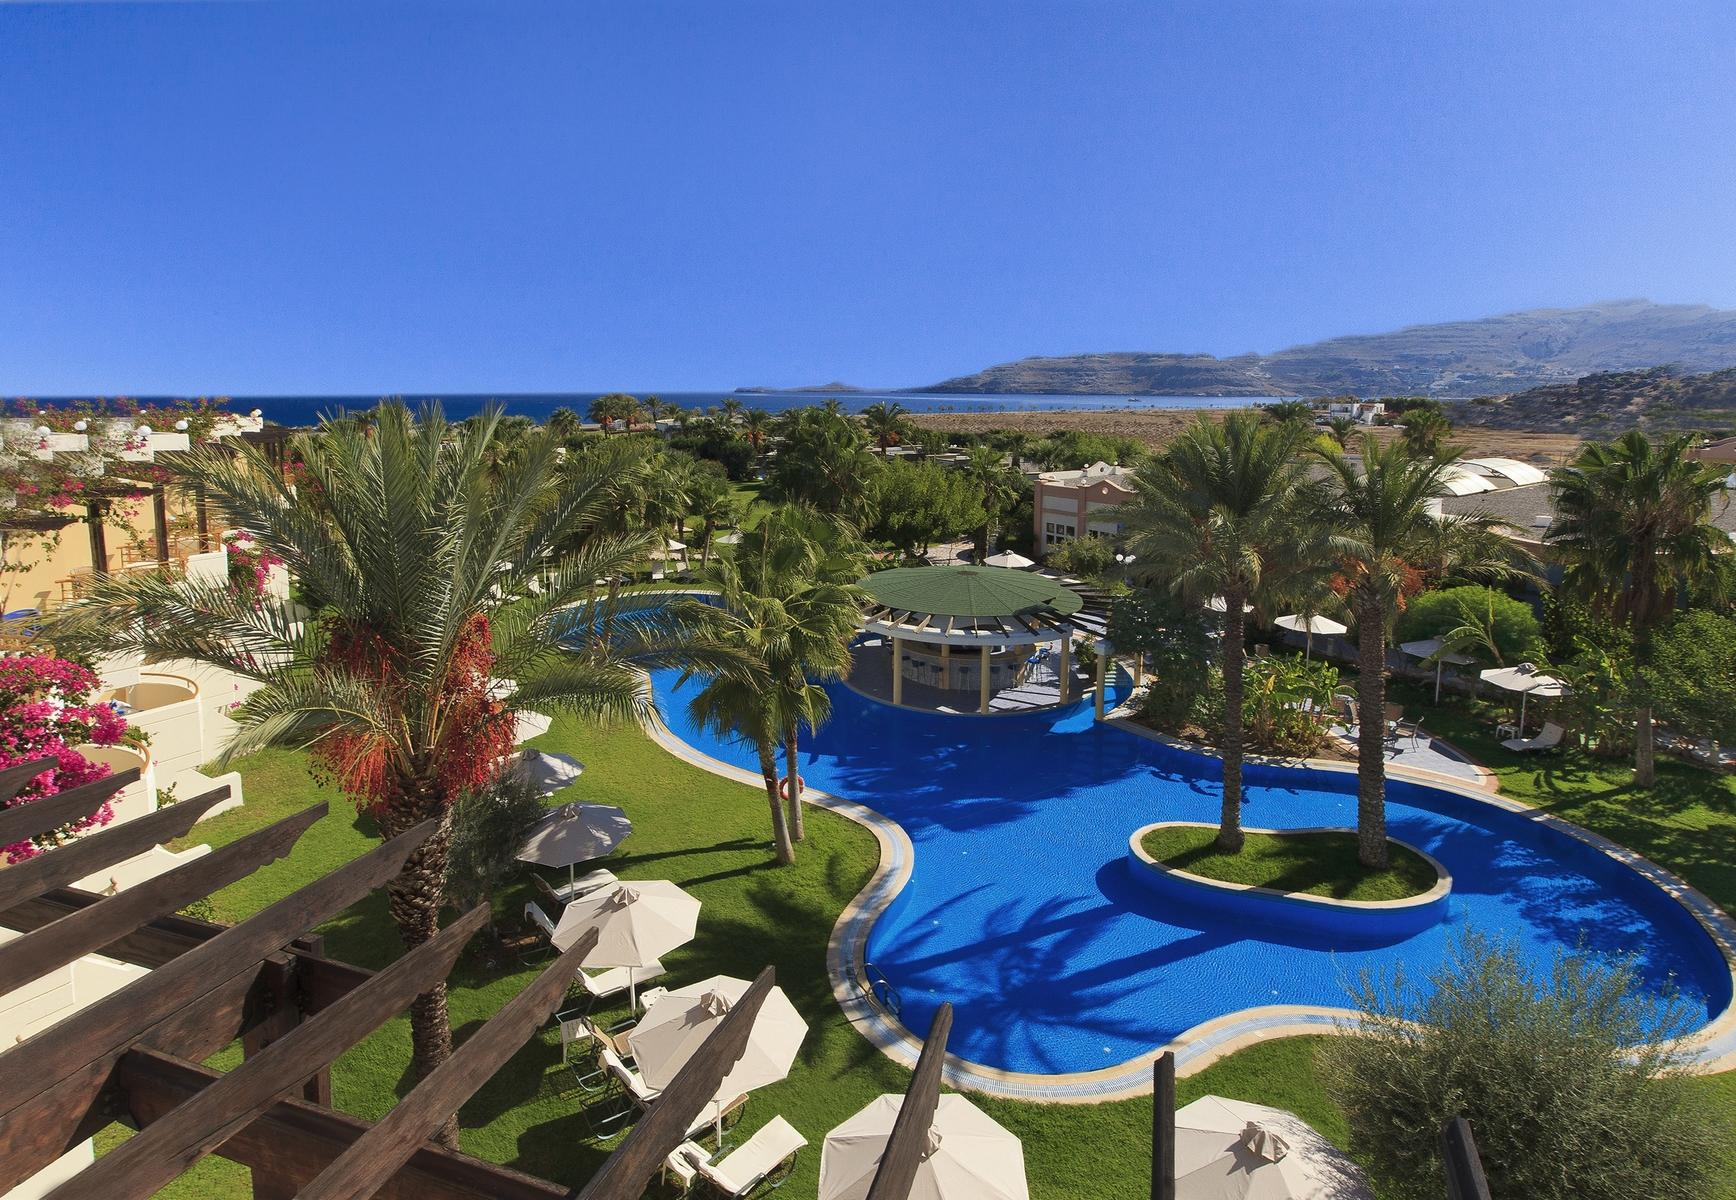 Atrium Palace Thalasso Spa Resort & Villas in Kalathos, Rhodes, Greek Islands